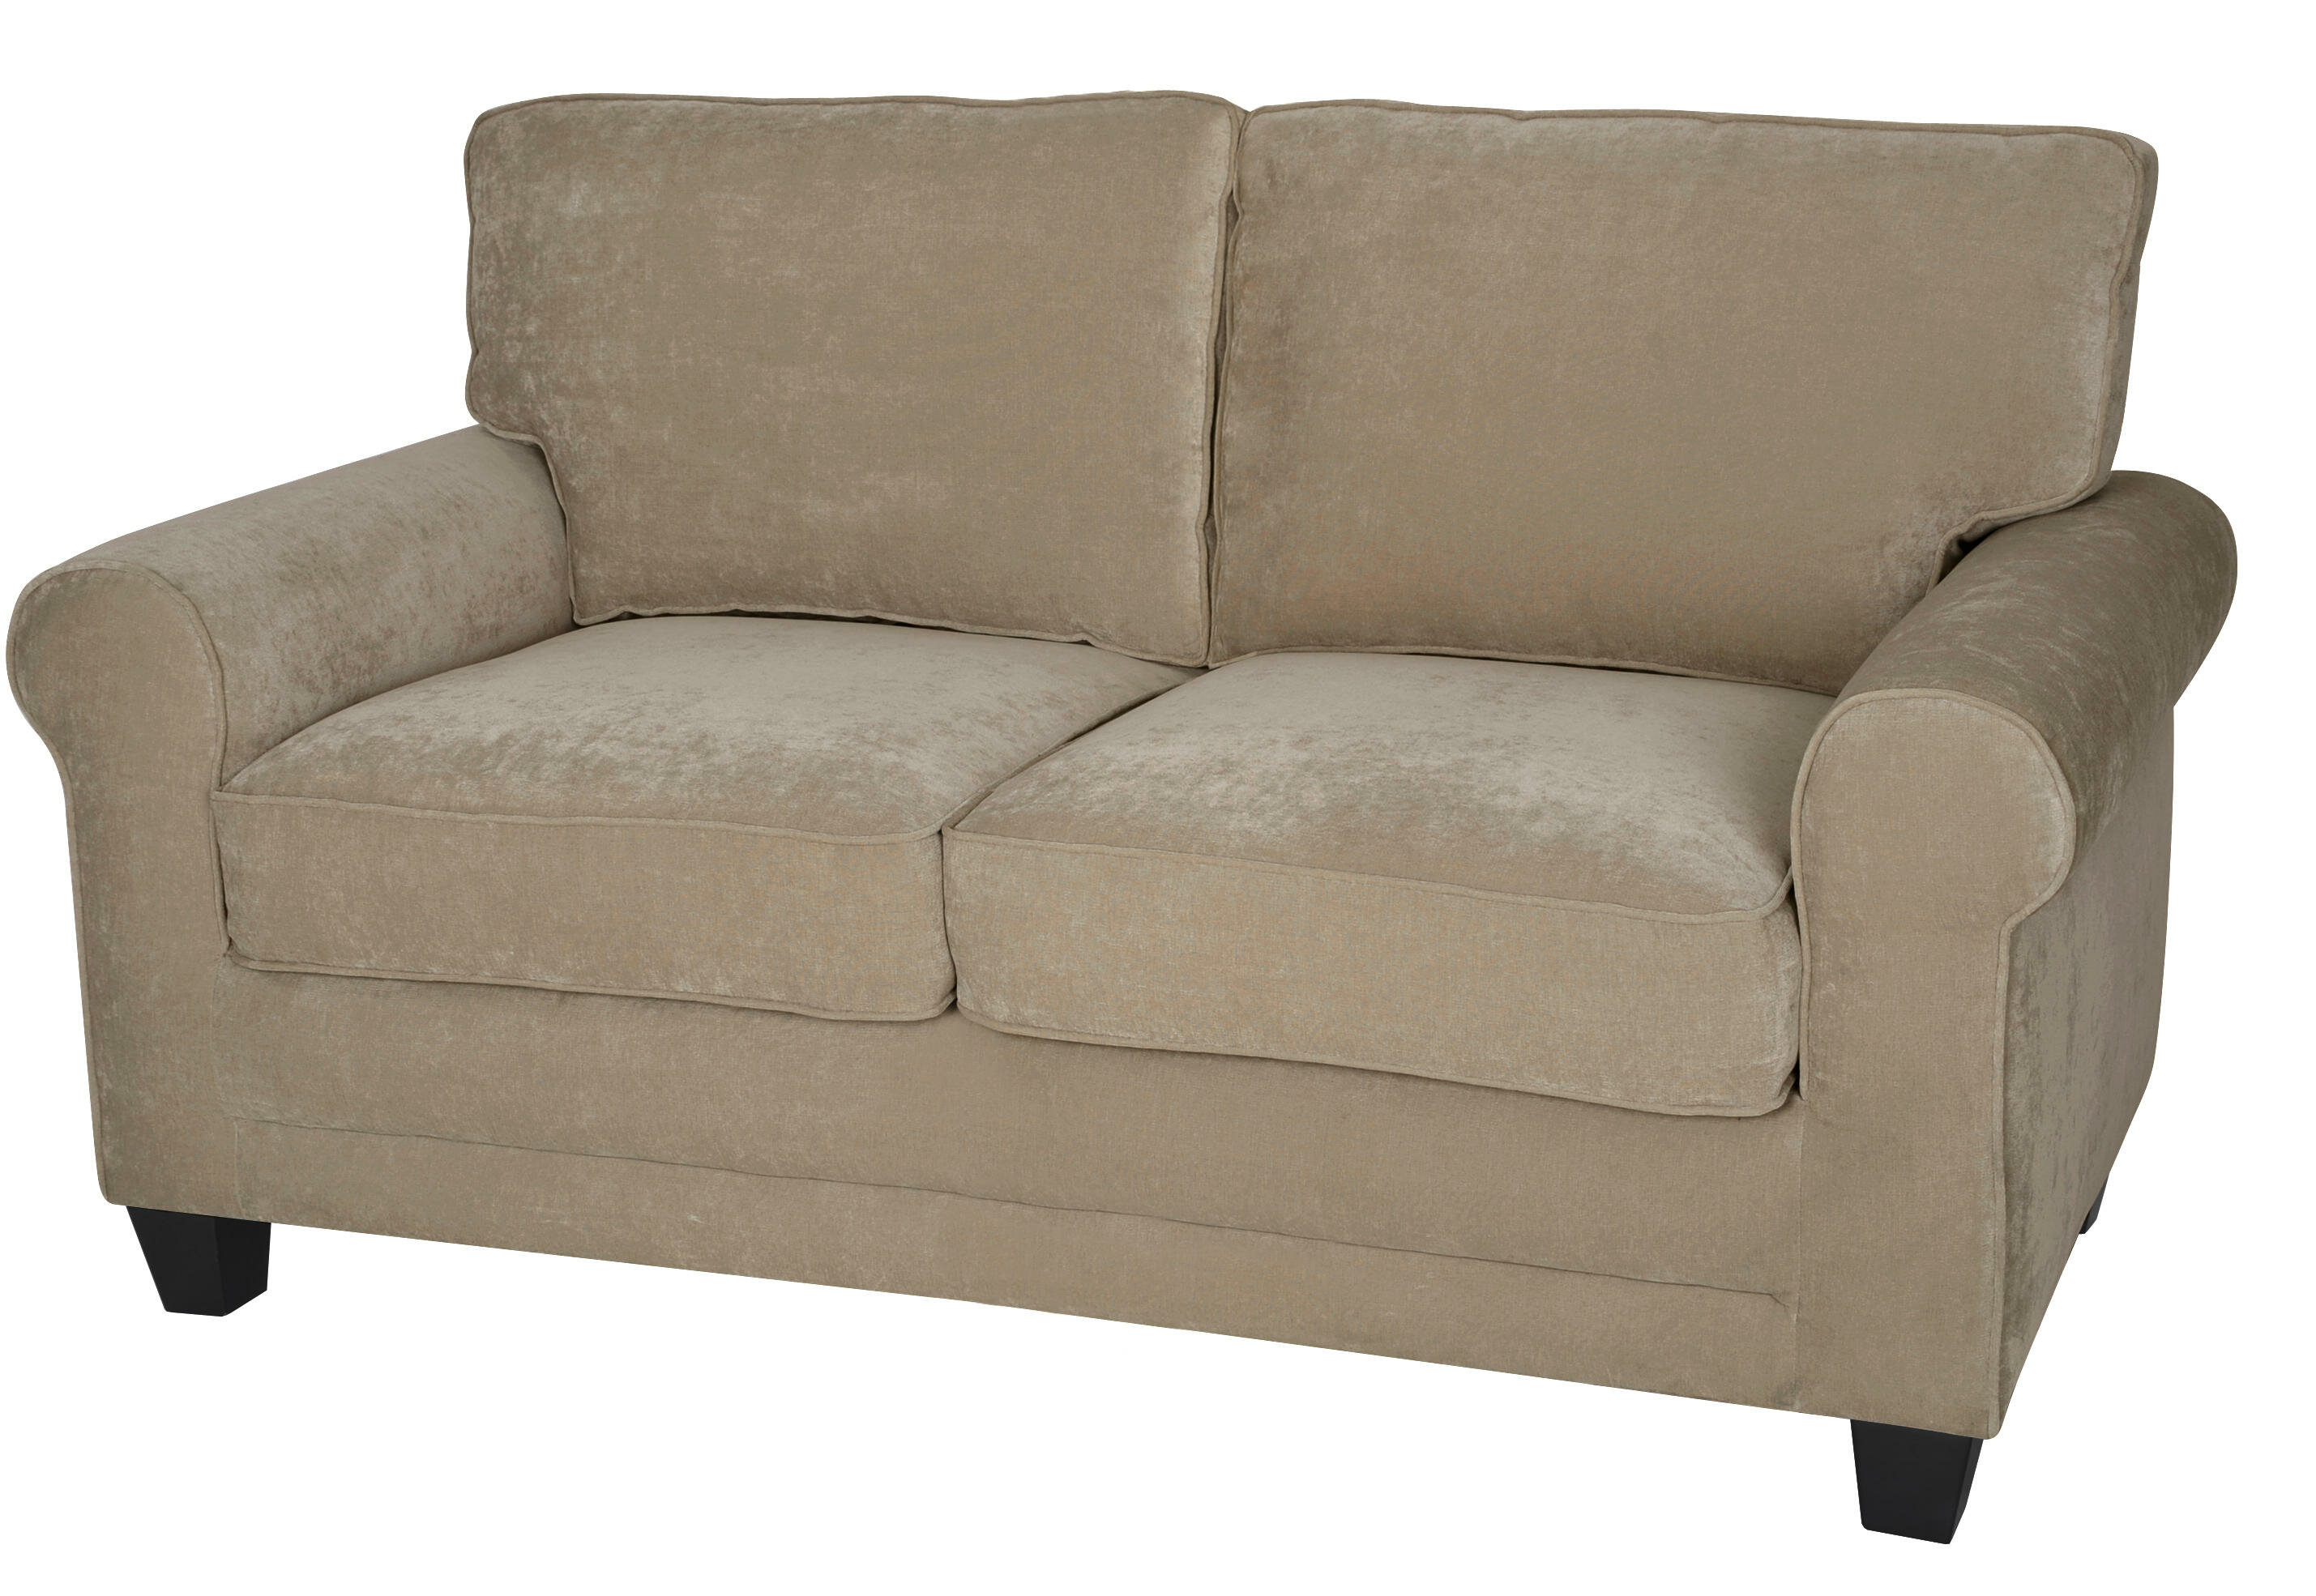 pdp joss reviews morre loveseat furniture main futon